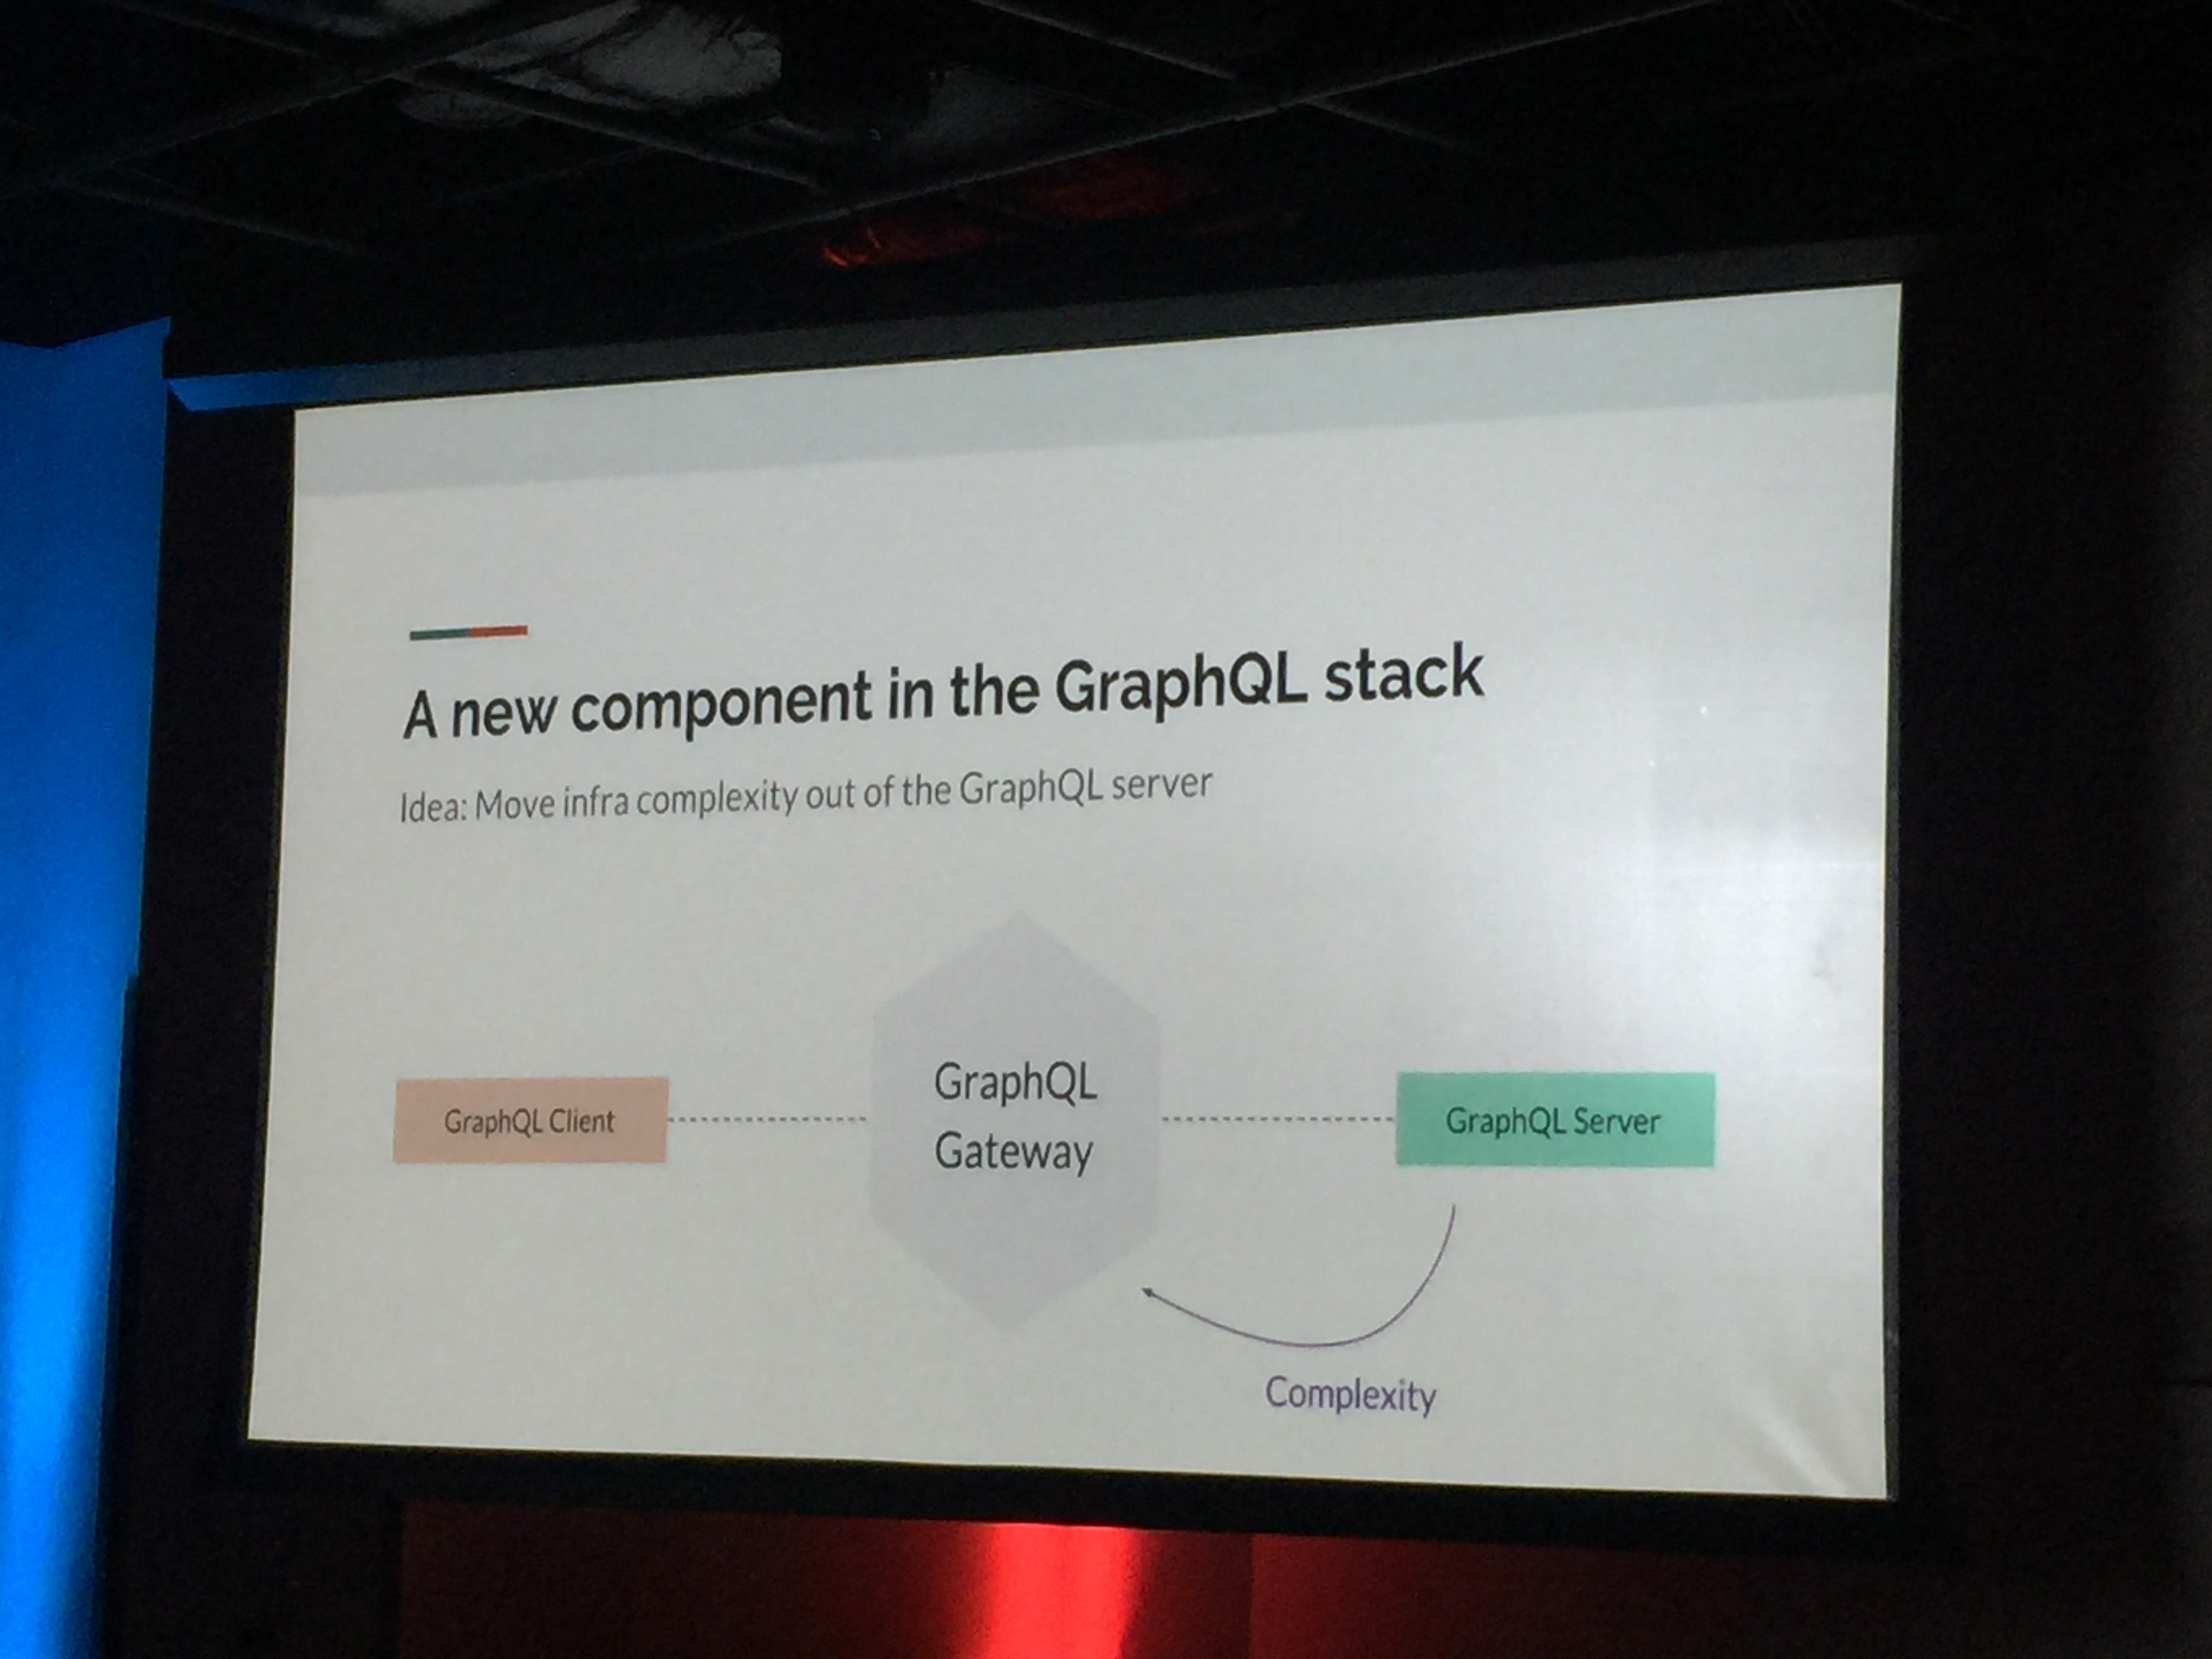 a-new-component-in-graphql-stack